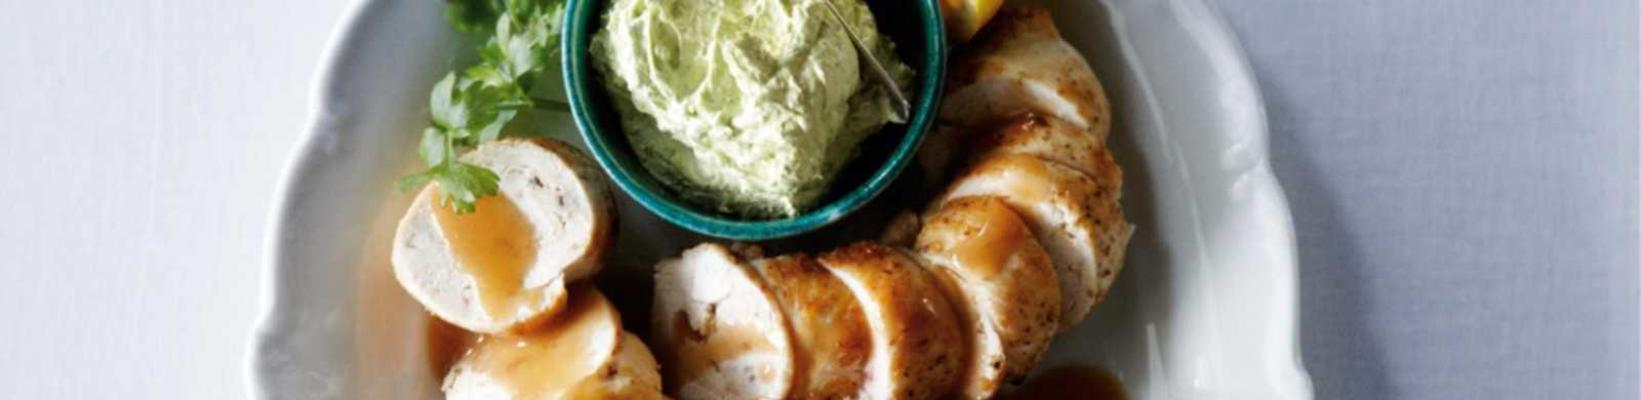 chicken fillet roll filled with anchovies, lemon and parsley butter